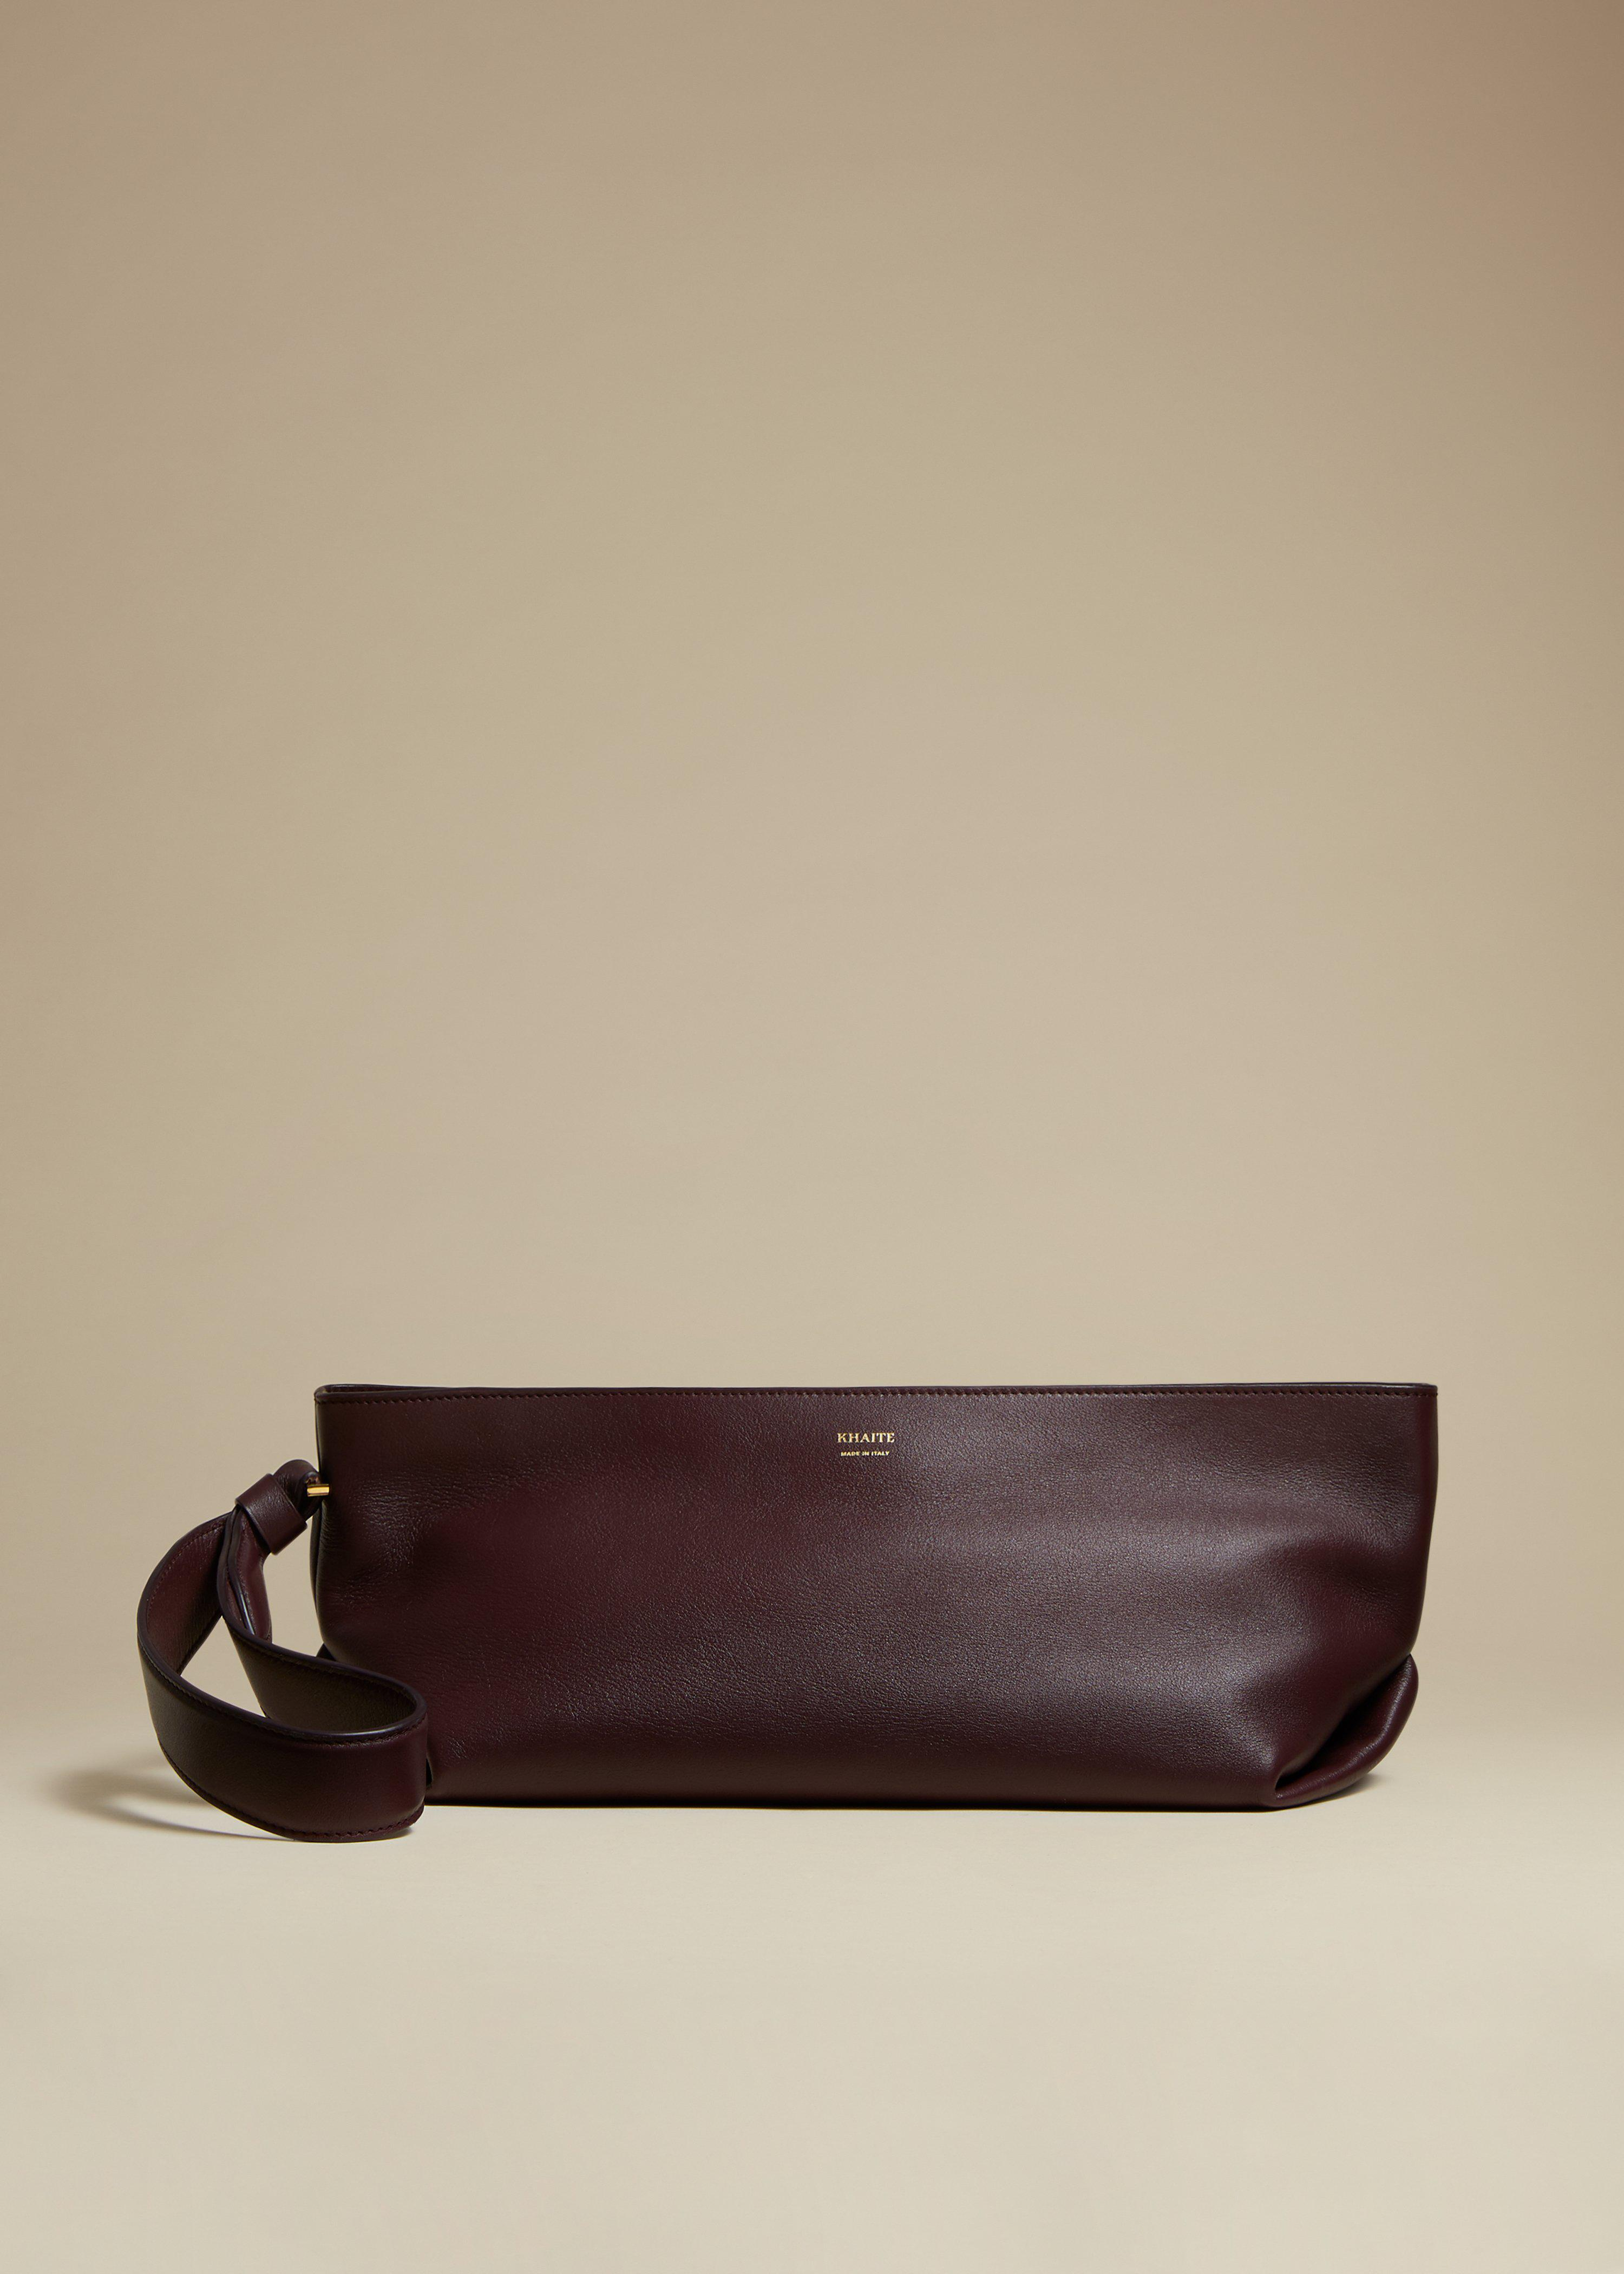 The Alma Wristlet in Deep Red Leather